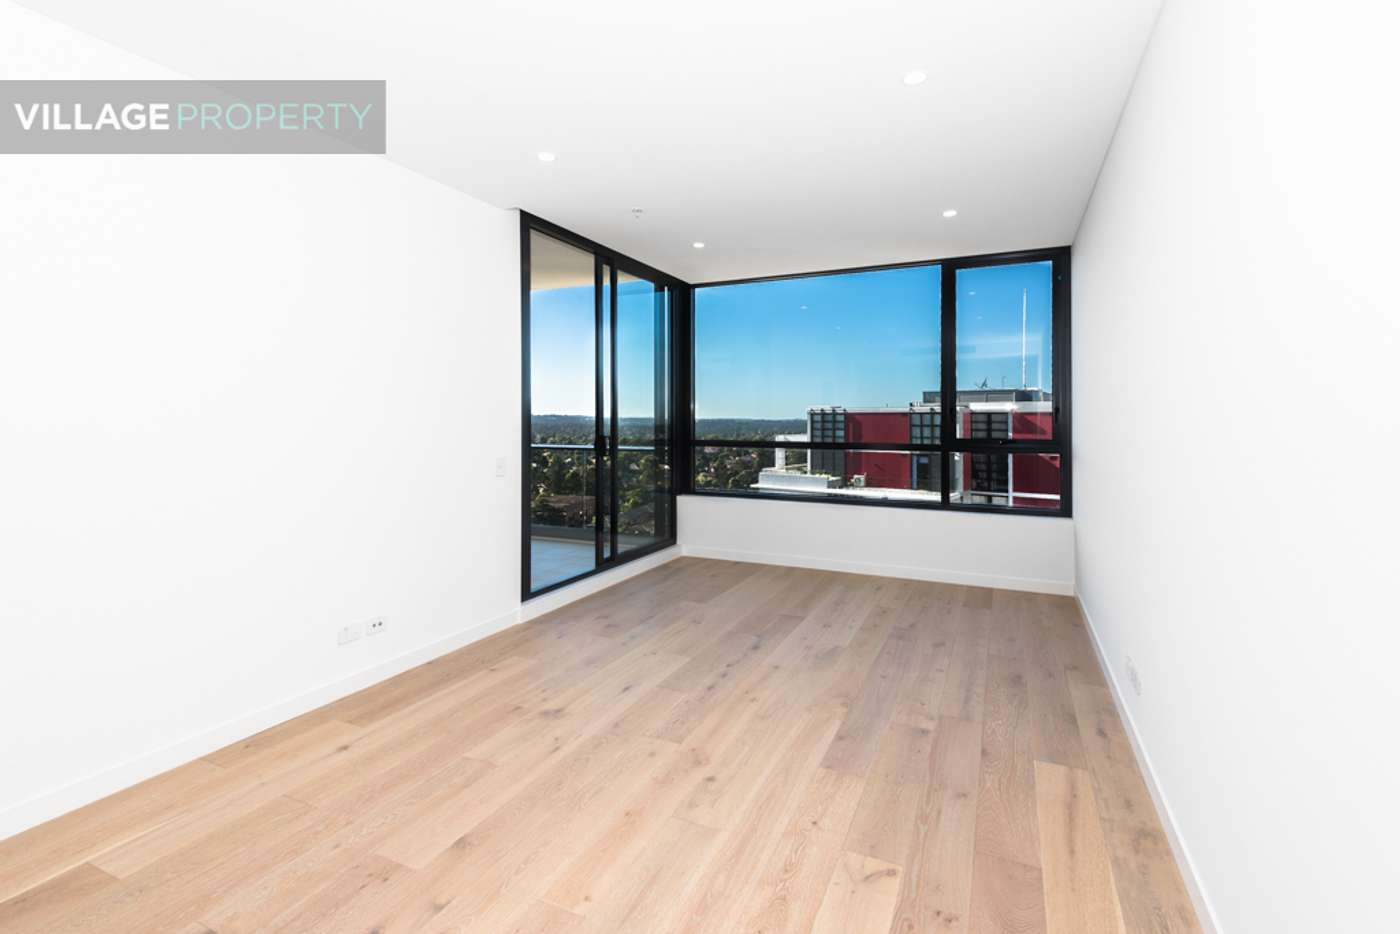 Main view of Homely apartment listing, 1401/22 Cambridge Street, Epping NSW 2121